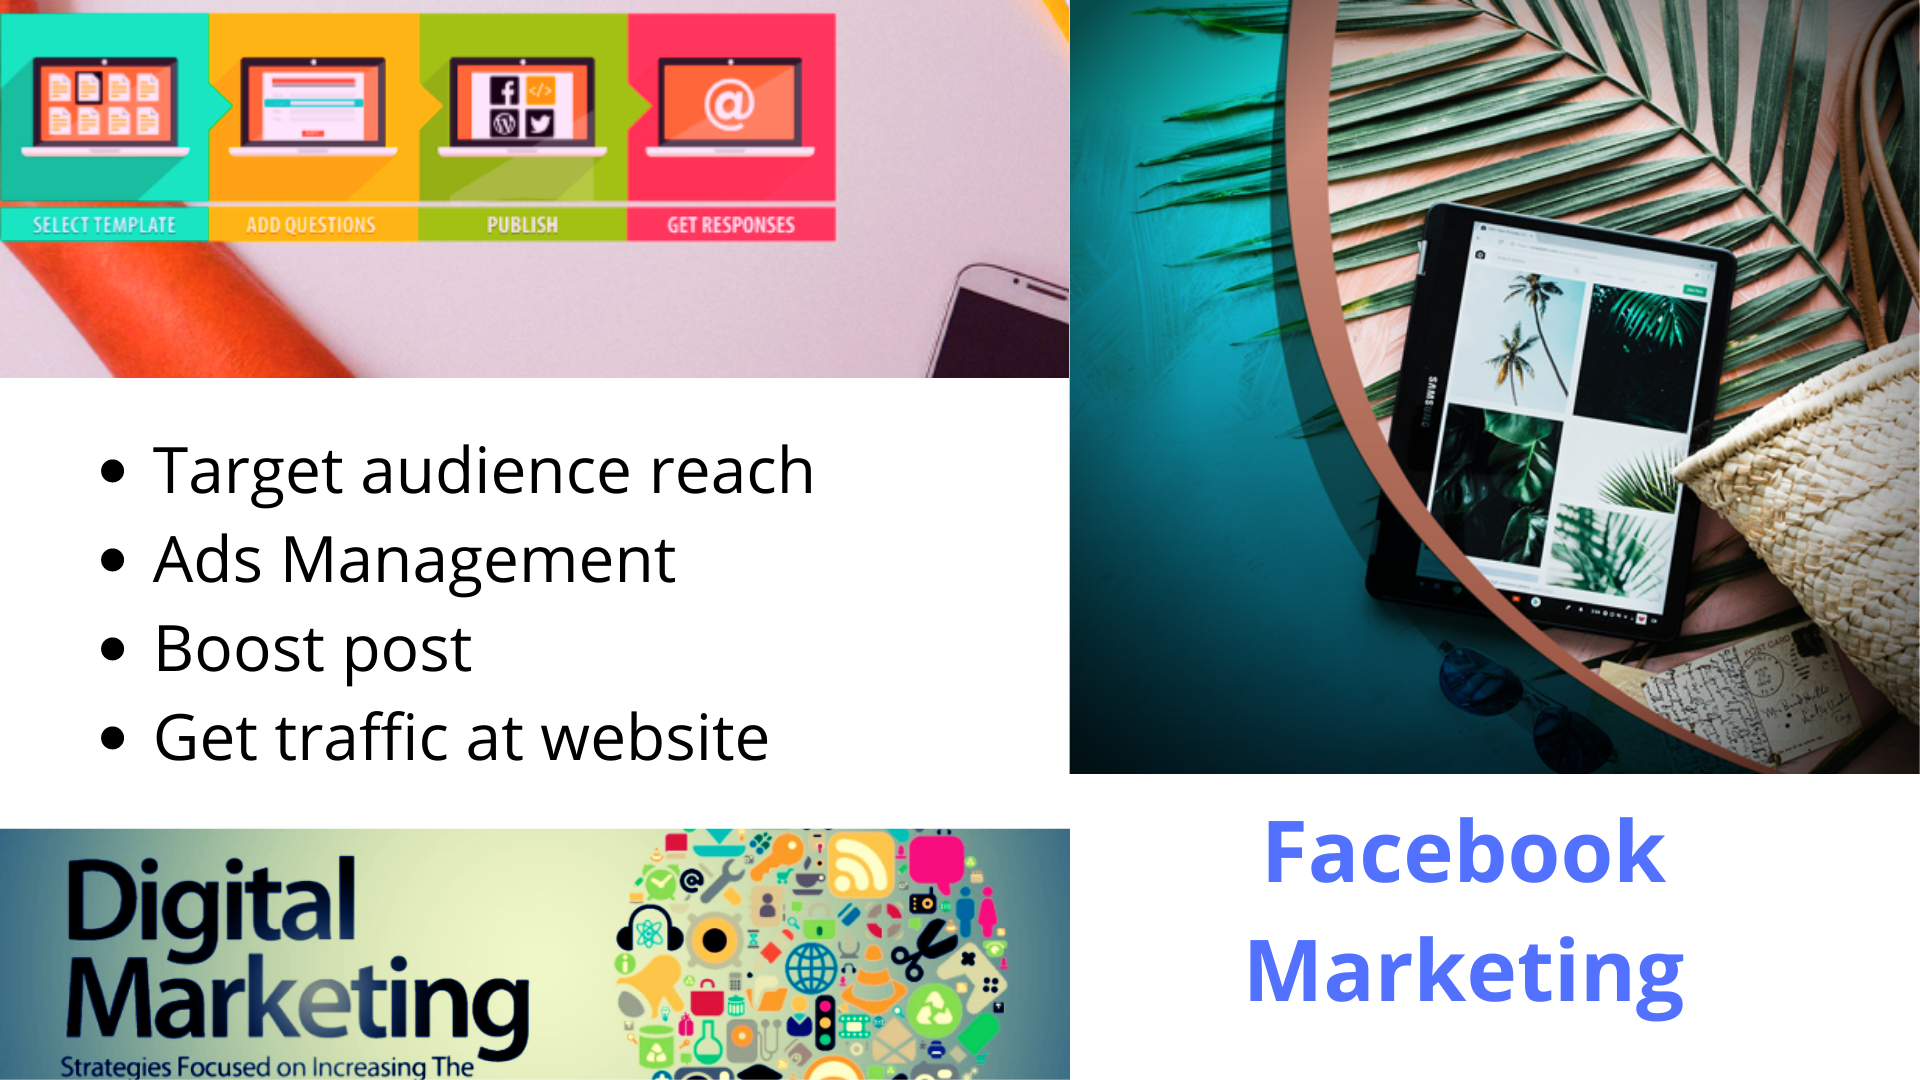 Digital Marketing to get target audience and boost post to get maximum clicks on a page